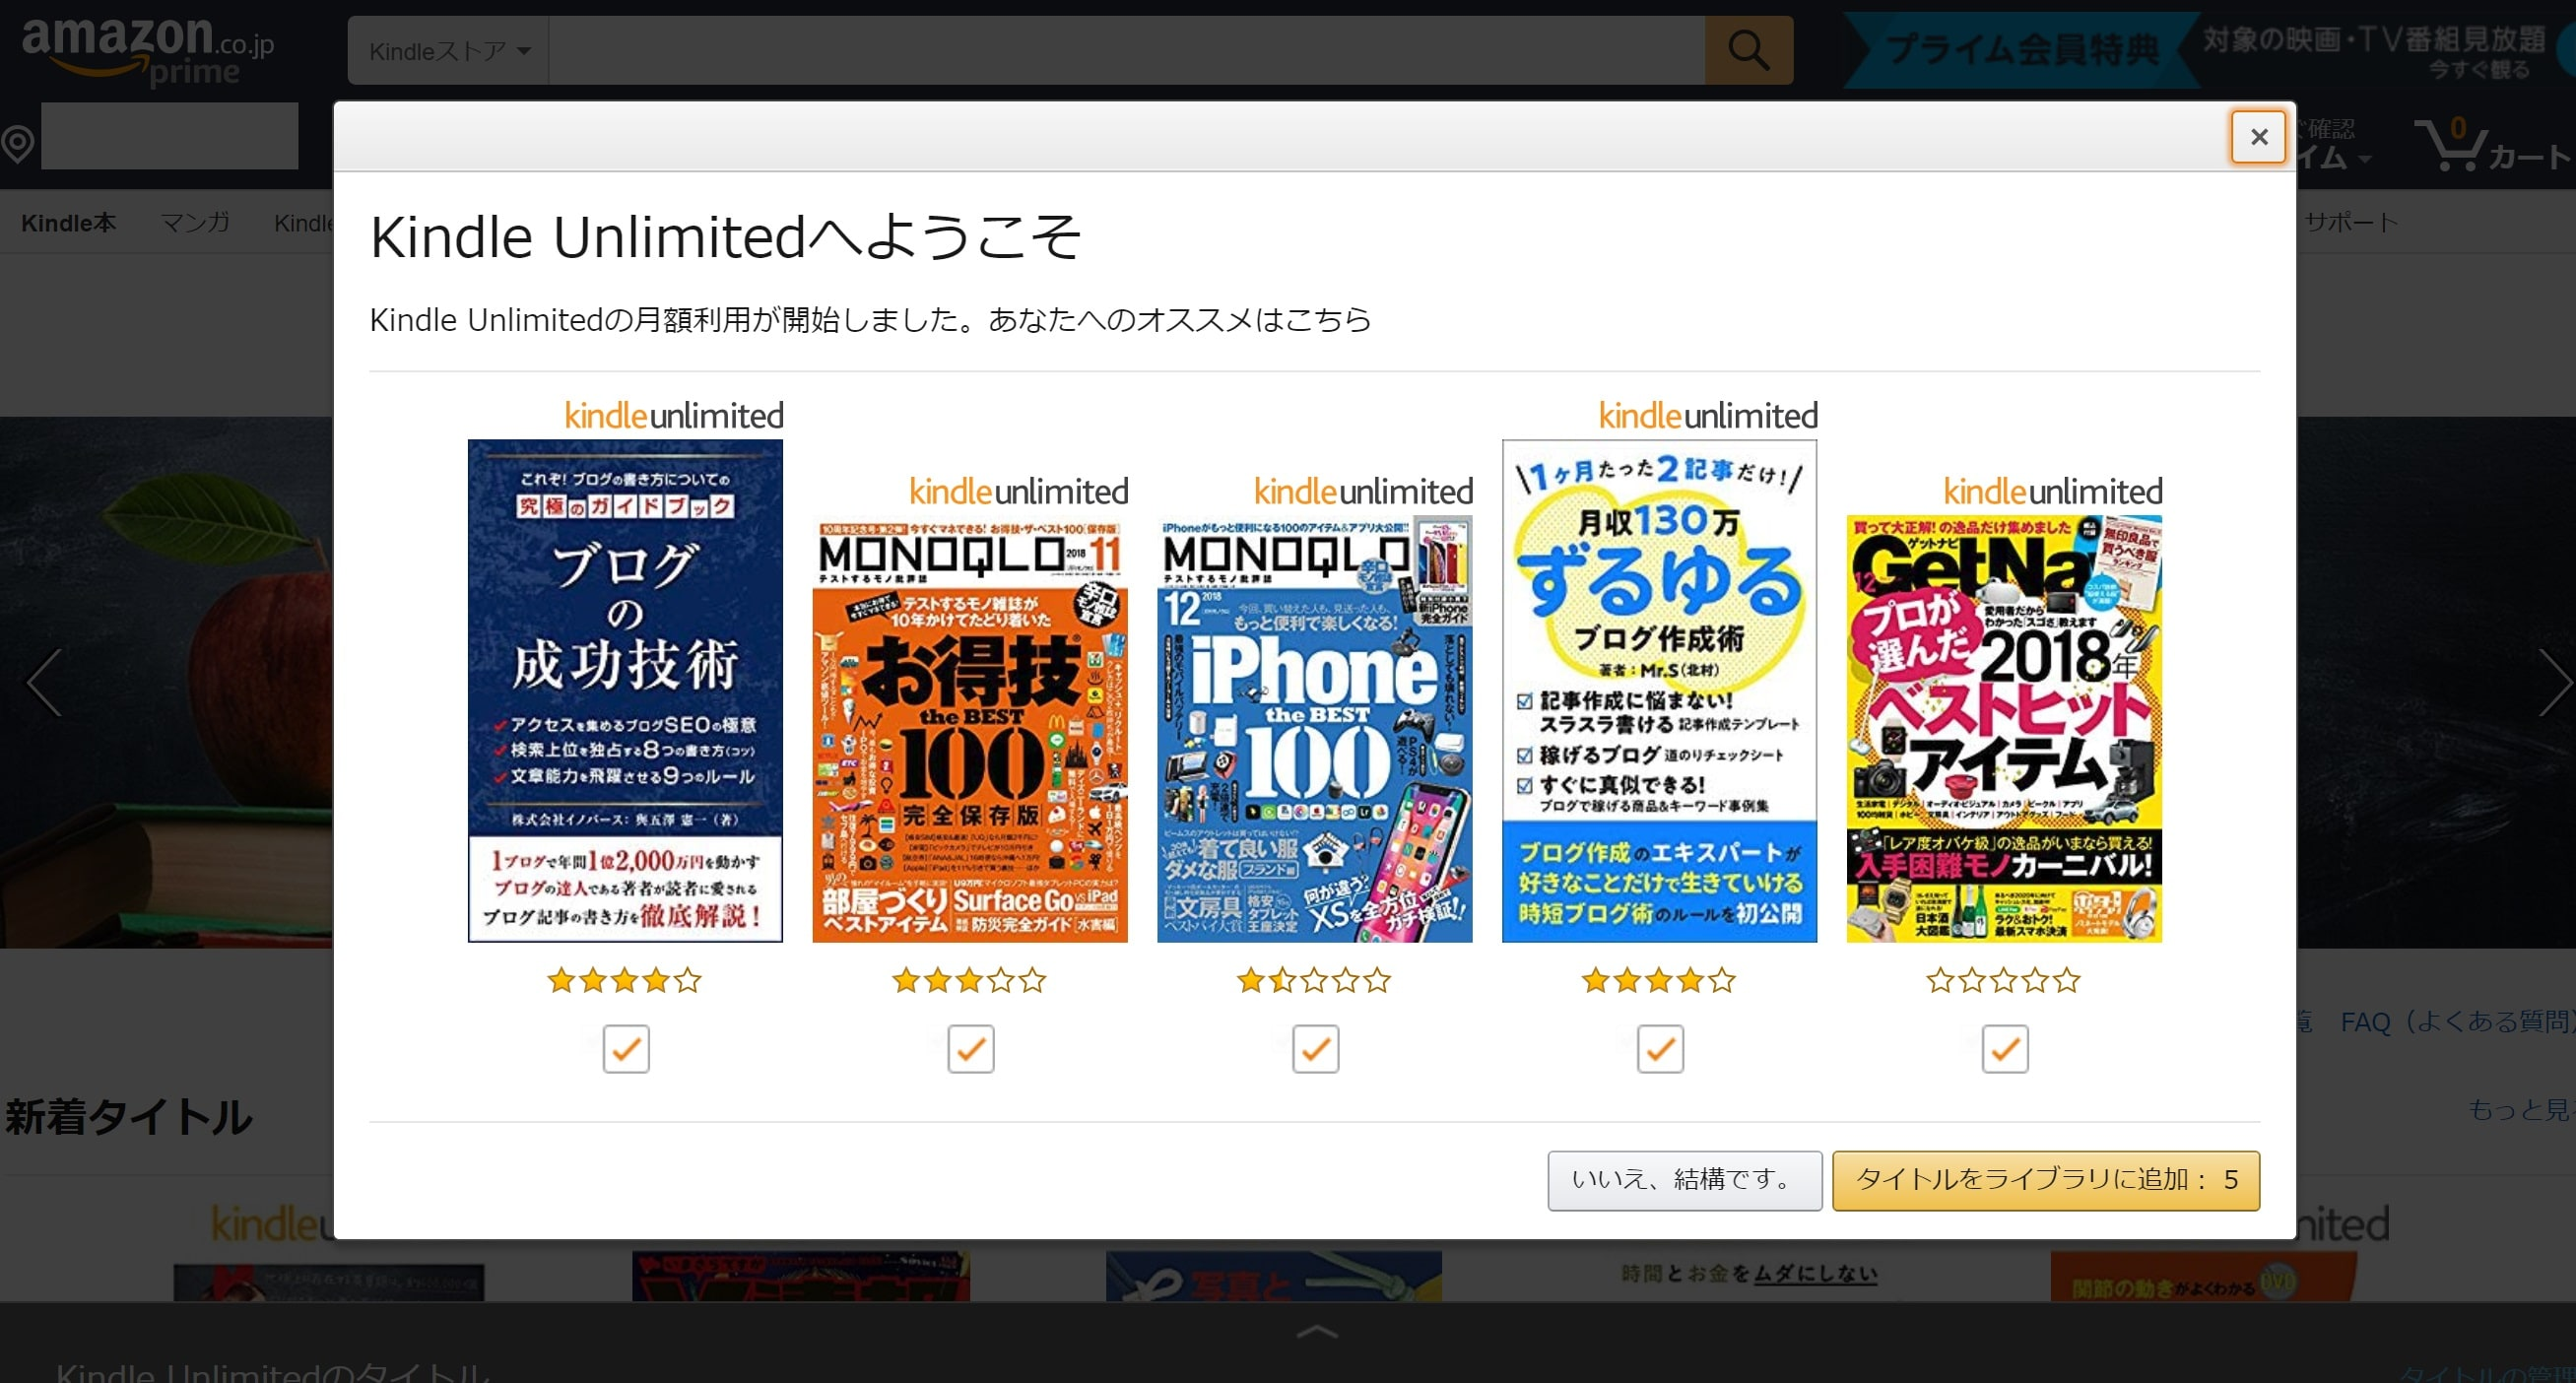 kindle unlimited登録完了